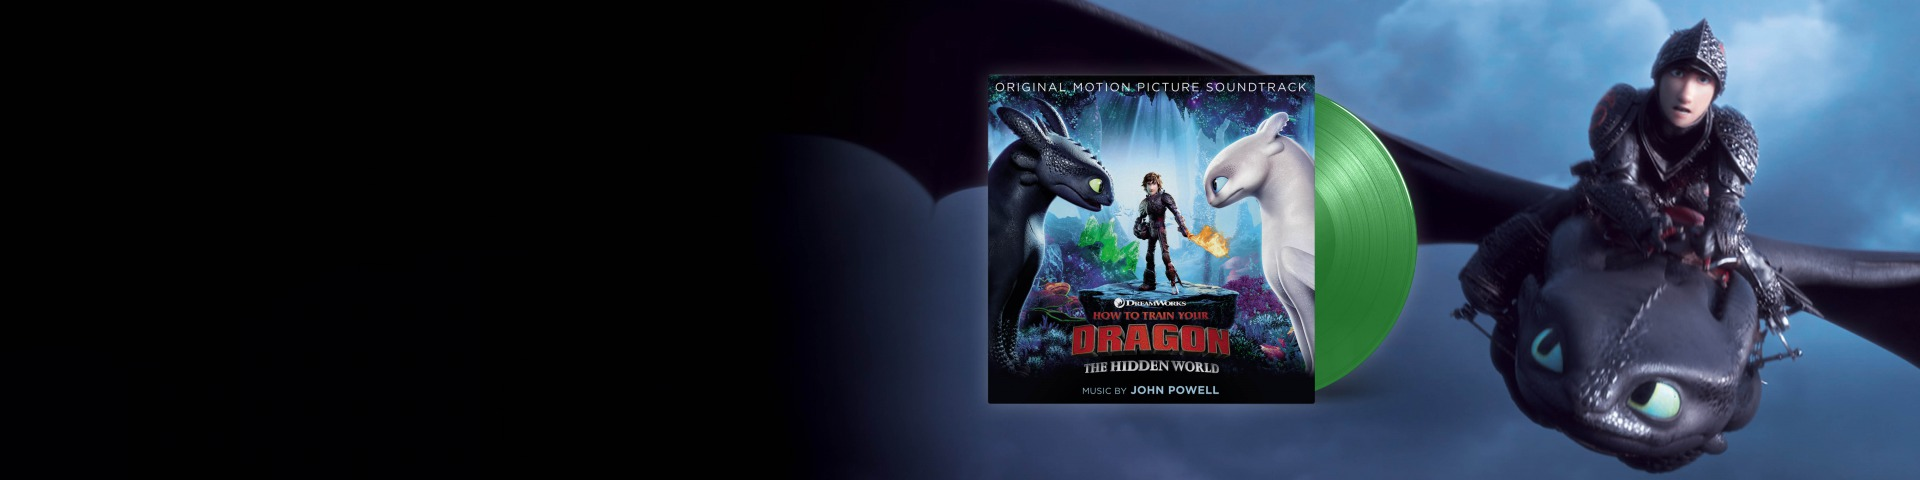 ORIGINAL SOUNDTRACK - HOW TO TRAIN YOUR DRAGON - 3: THE HIDDEN WORLD